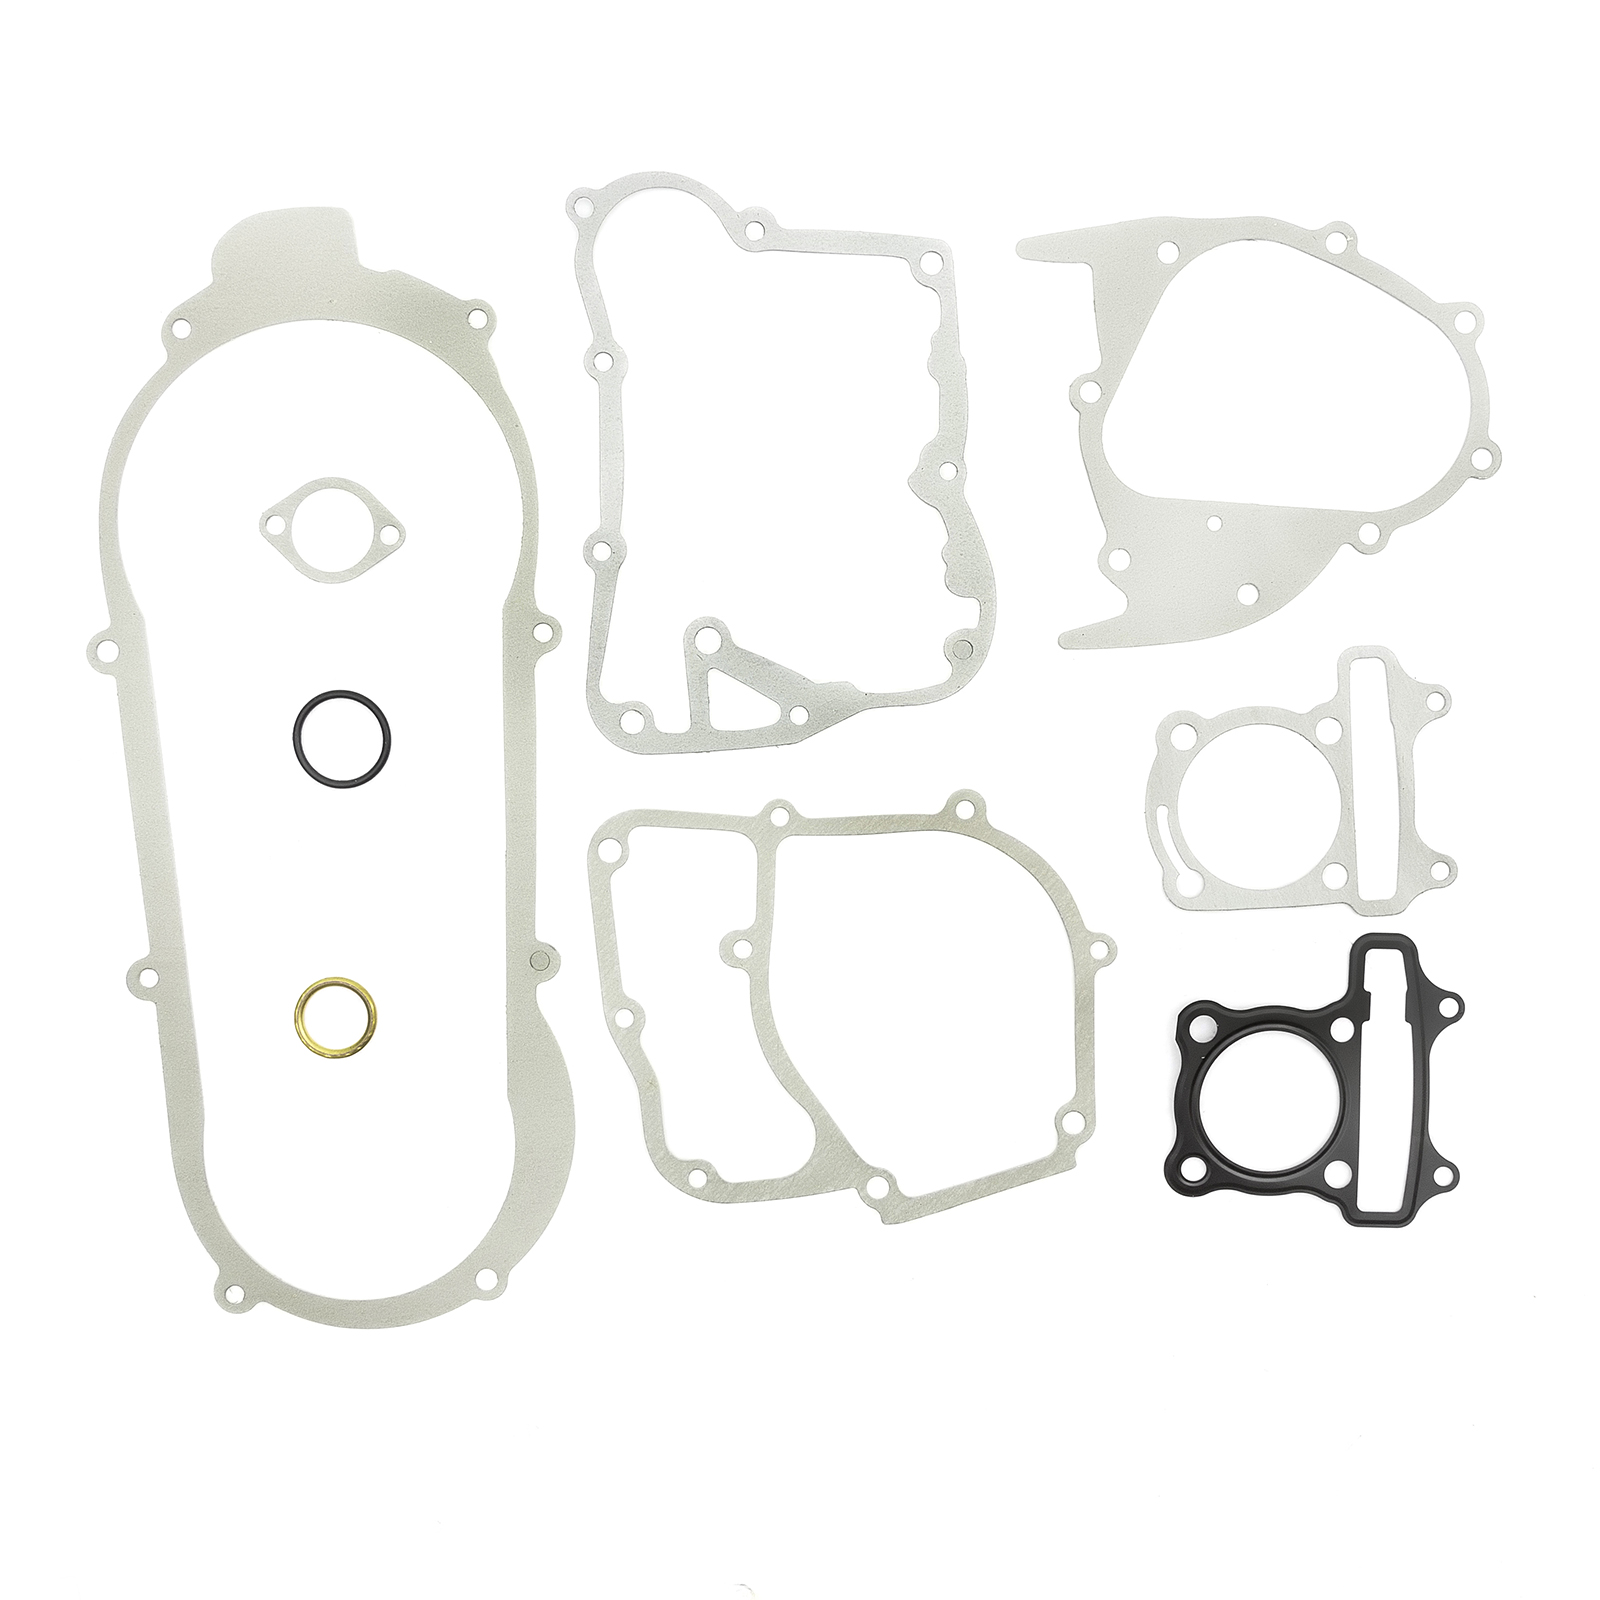 Engine GASKET SET 125cc Scooter GY6 Belt 743 20 30 410mm